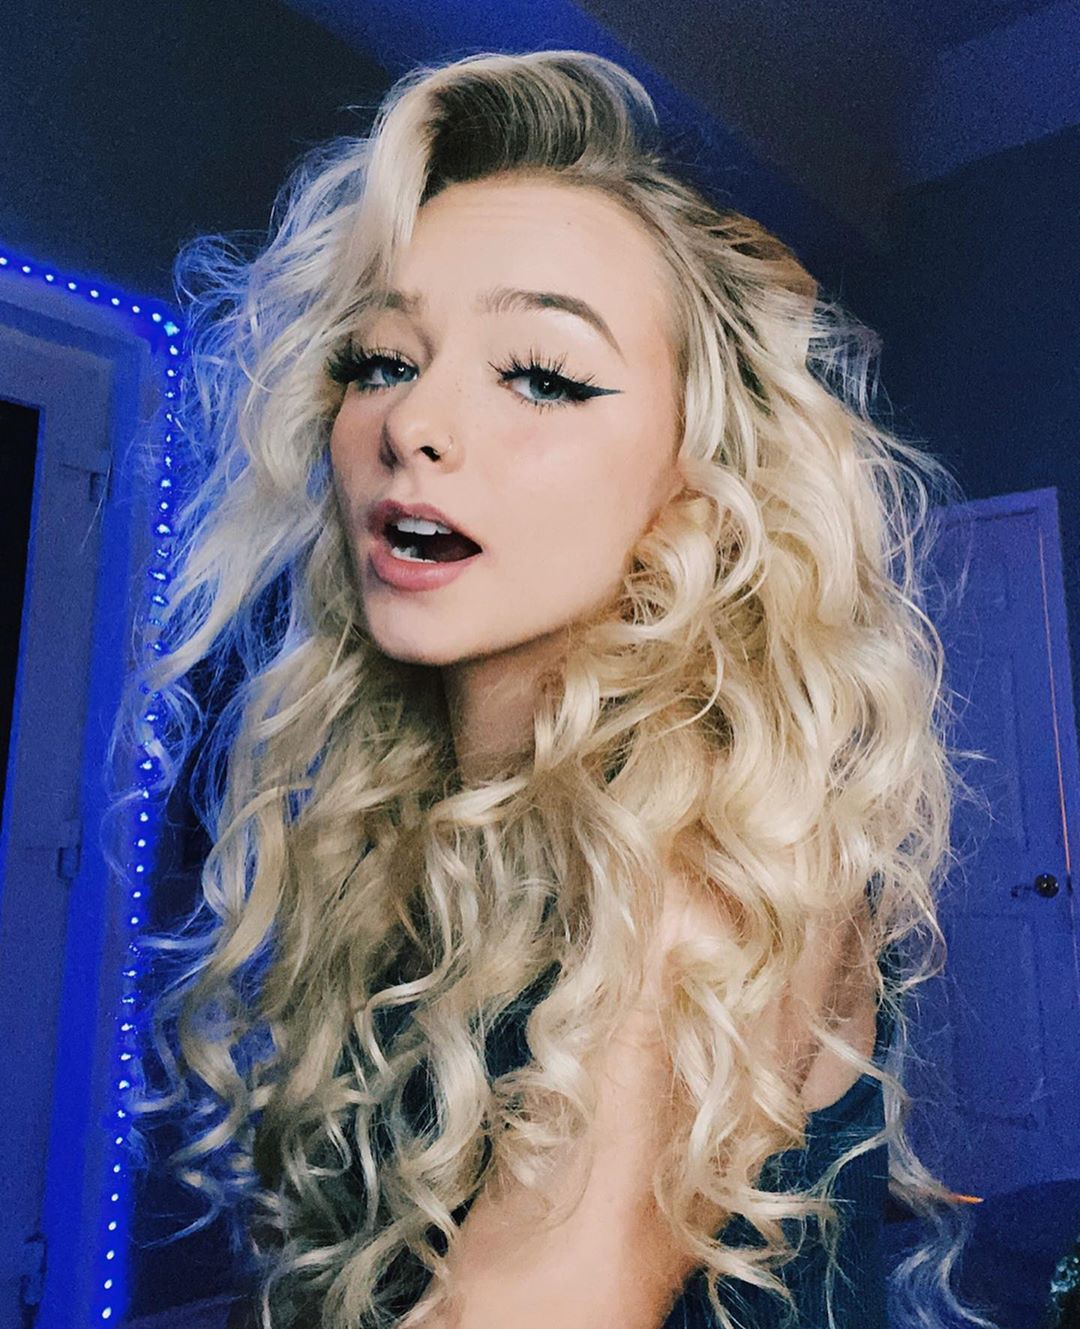 Zoe Laverne blond hairs, Cute Girls Face, Natural Glossy Lips